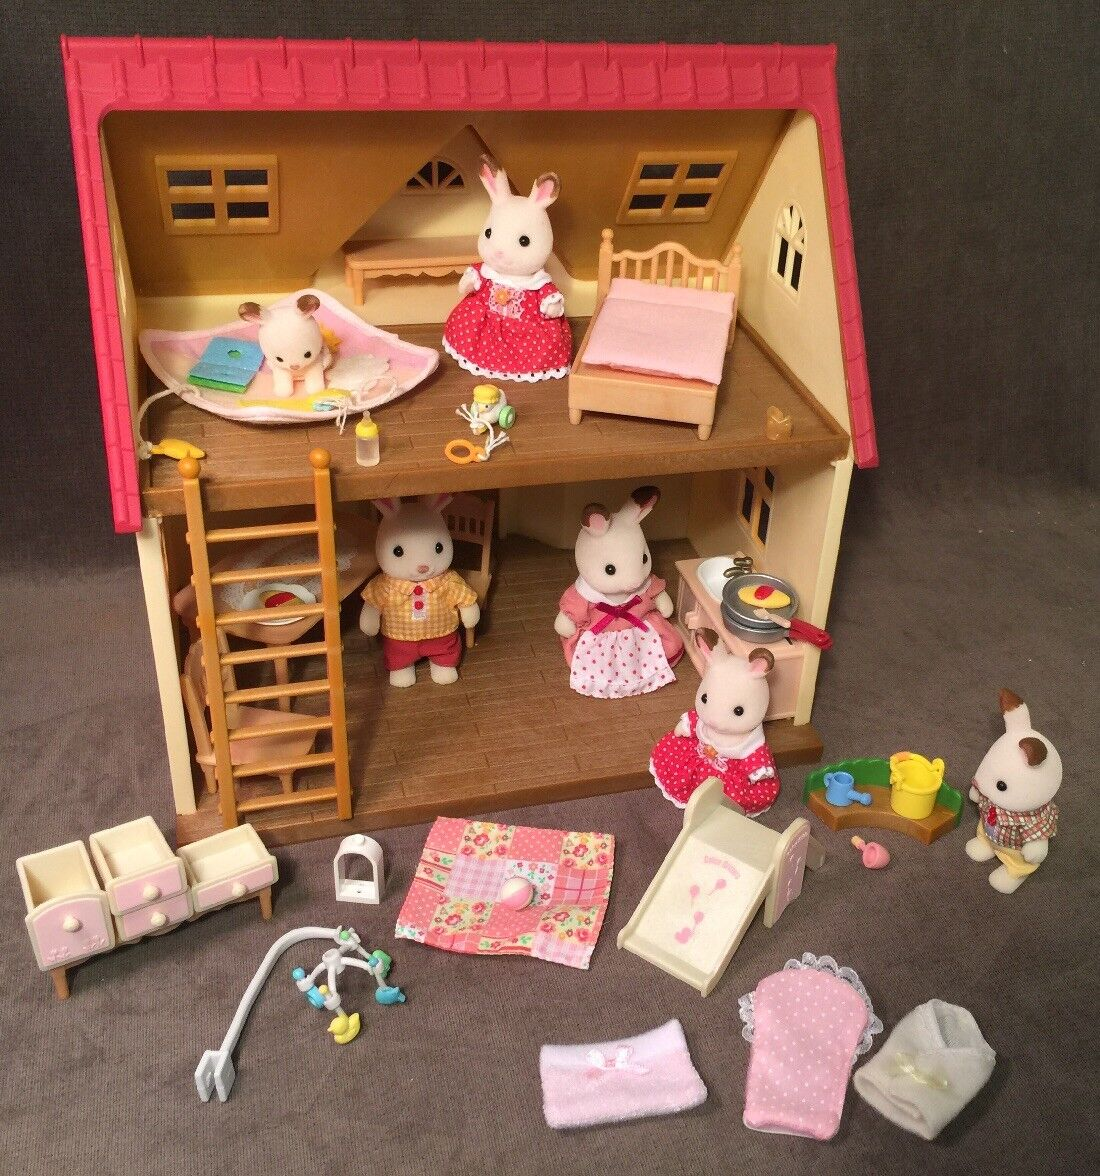 Lot Calico Critters Epoch Cozy Cottage House Furniture Hopscotch Bunnies Toys +